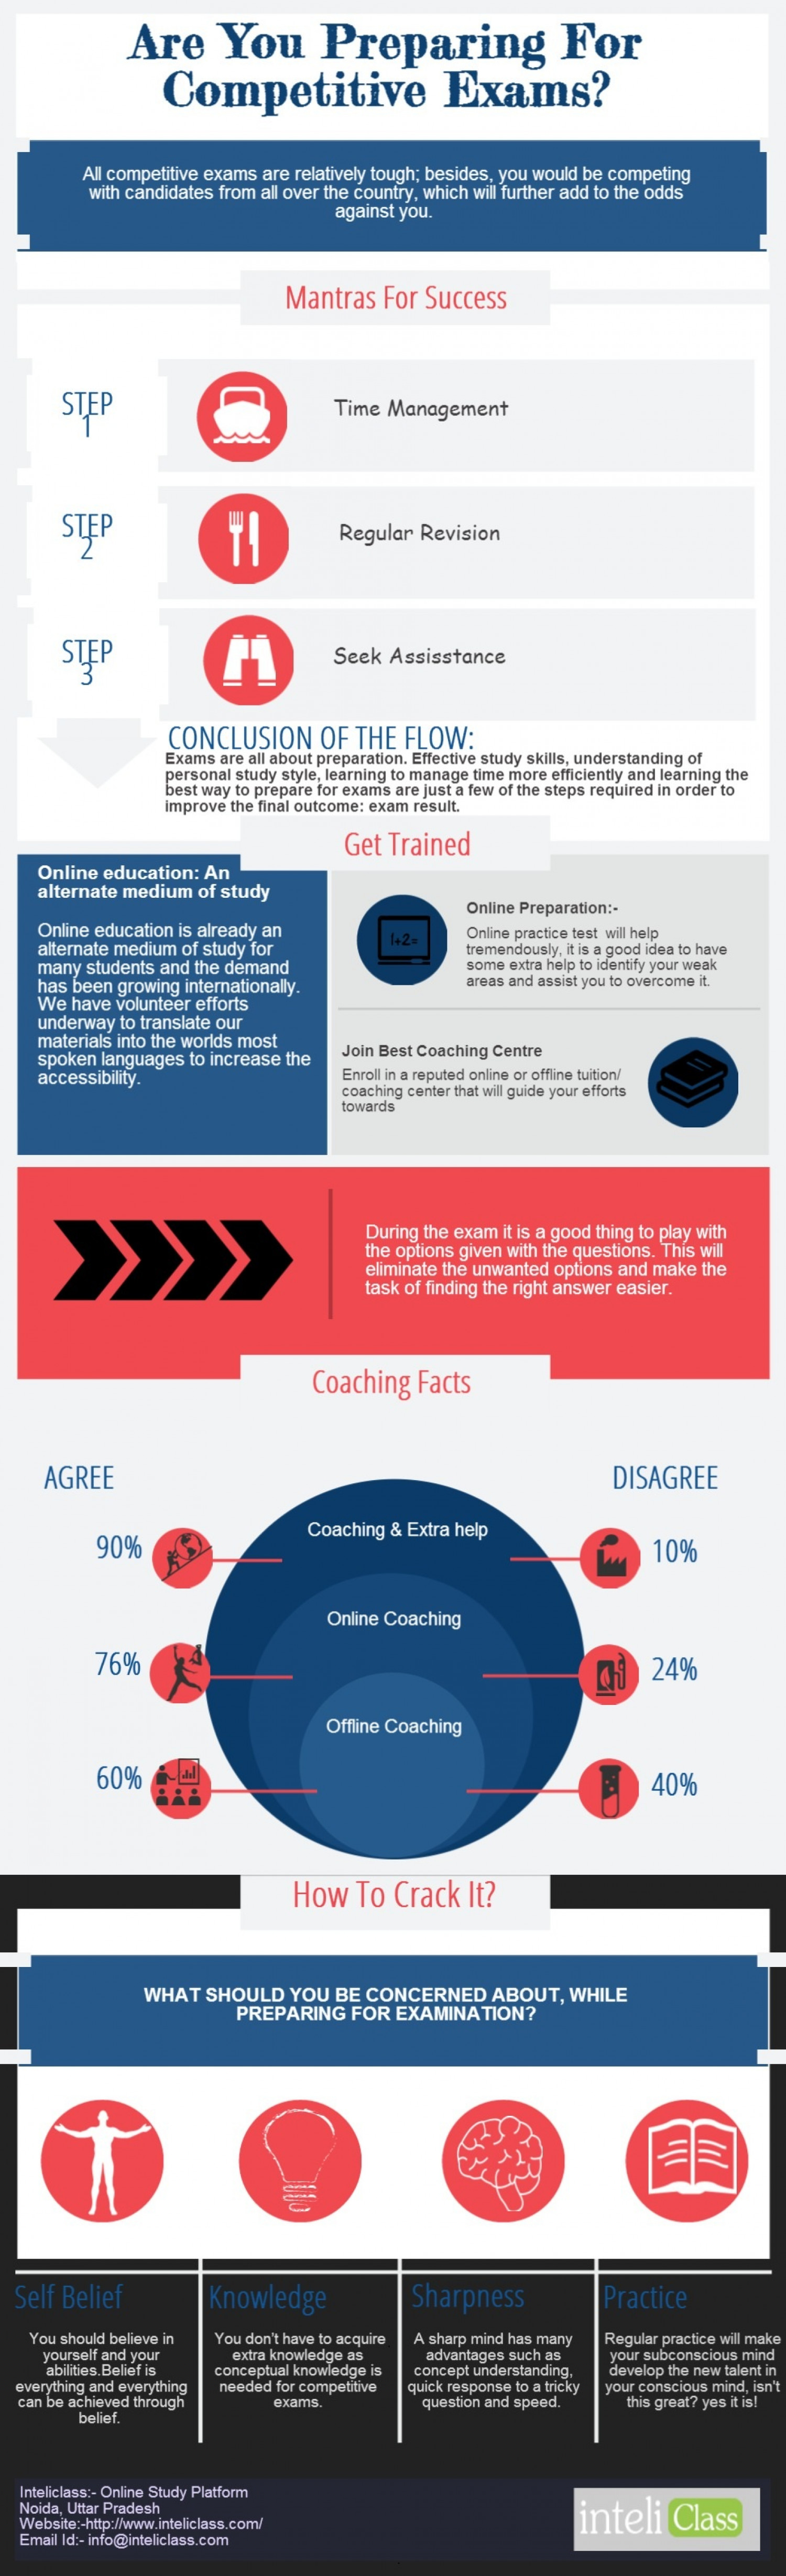 Are you preparing for competitive exams? Infographic